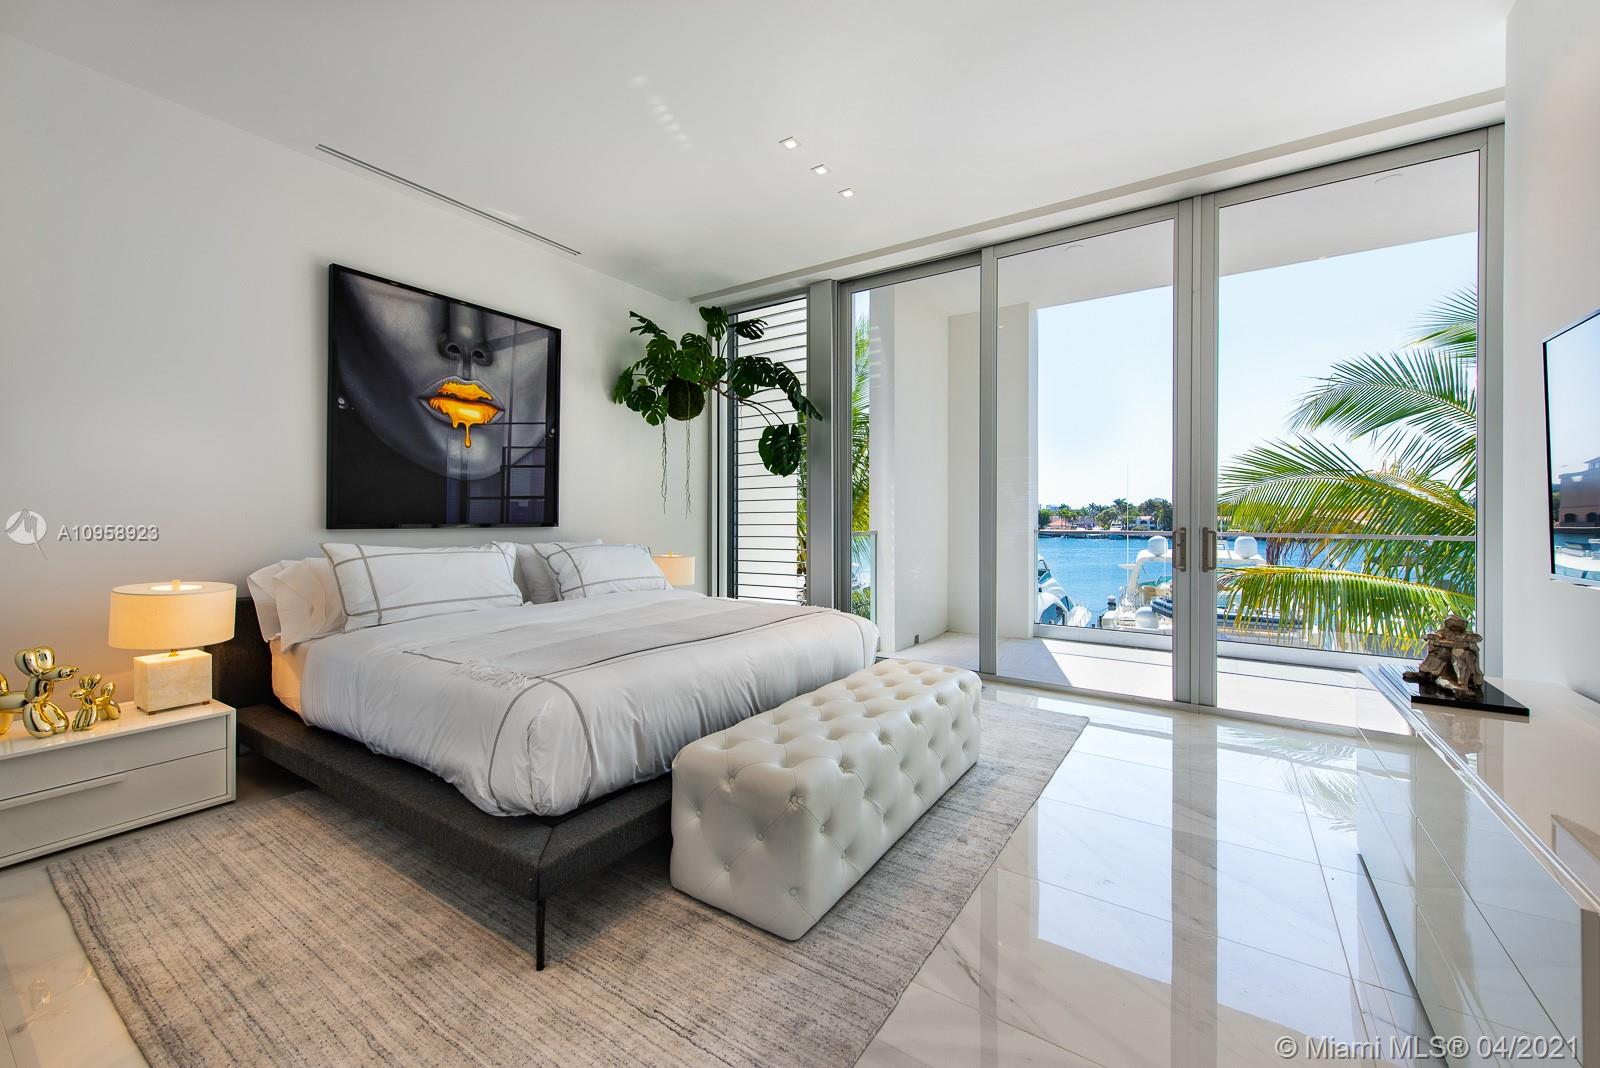 """New construction waterfront modern marvel. These residences are to be complete Q4 2020! This """"Segovia"""" model boasts over 3,680 SF interior in addition to staff quarters in addition a to a den/4th bedroom, rooftop terrace overlooking a tranquil marina and 90' yachts - slips available 40-120'. Located at The Point in Aventura, this waterfront residence will be delivered finished with custom ceilings, porcelain flooring and other fine finishes by Interiors by Steven G. Featuring modern Italian kitchens and bathroom cabinets by Mia Cucina, including top-of-the-line Subzero and Wolf appliances. Dramatic 12-foot ceiling heights in living room, dining room & kitchens areas. Owners will enjoy a 25,000 SF state-of-the-art Club & full-service Spa, fitness center, Spa Café, and lighted tennis courts."""